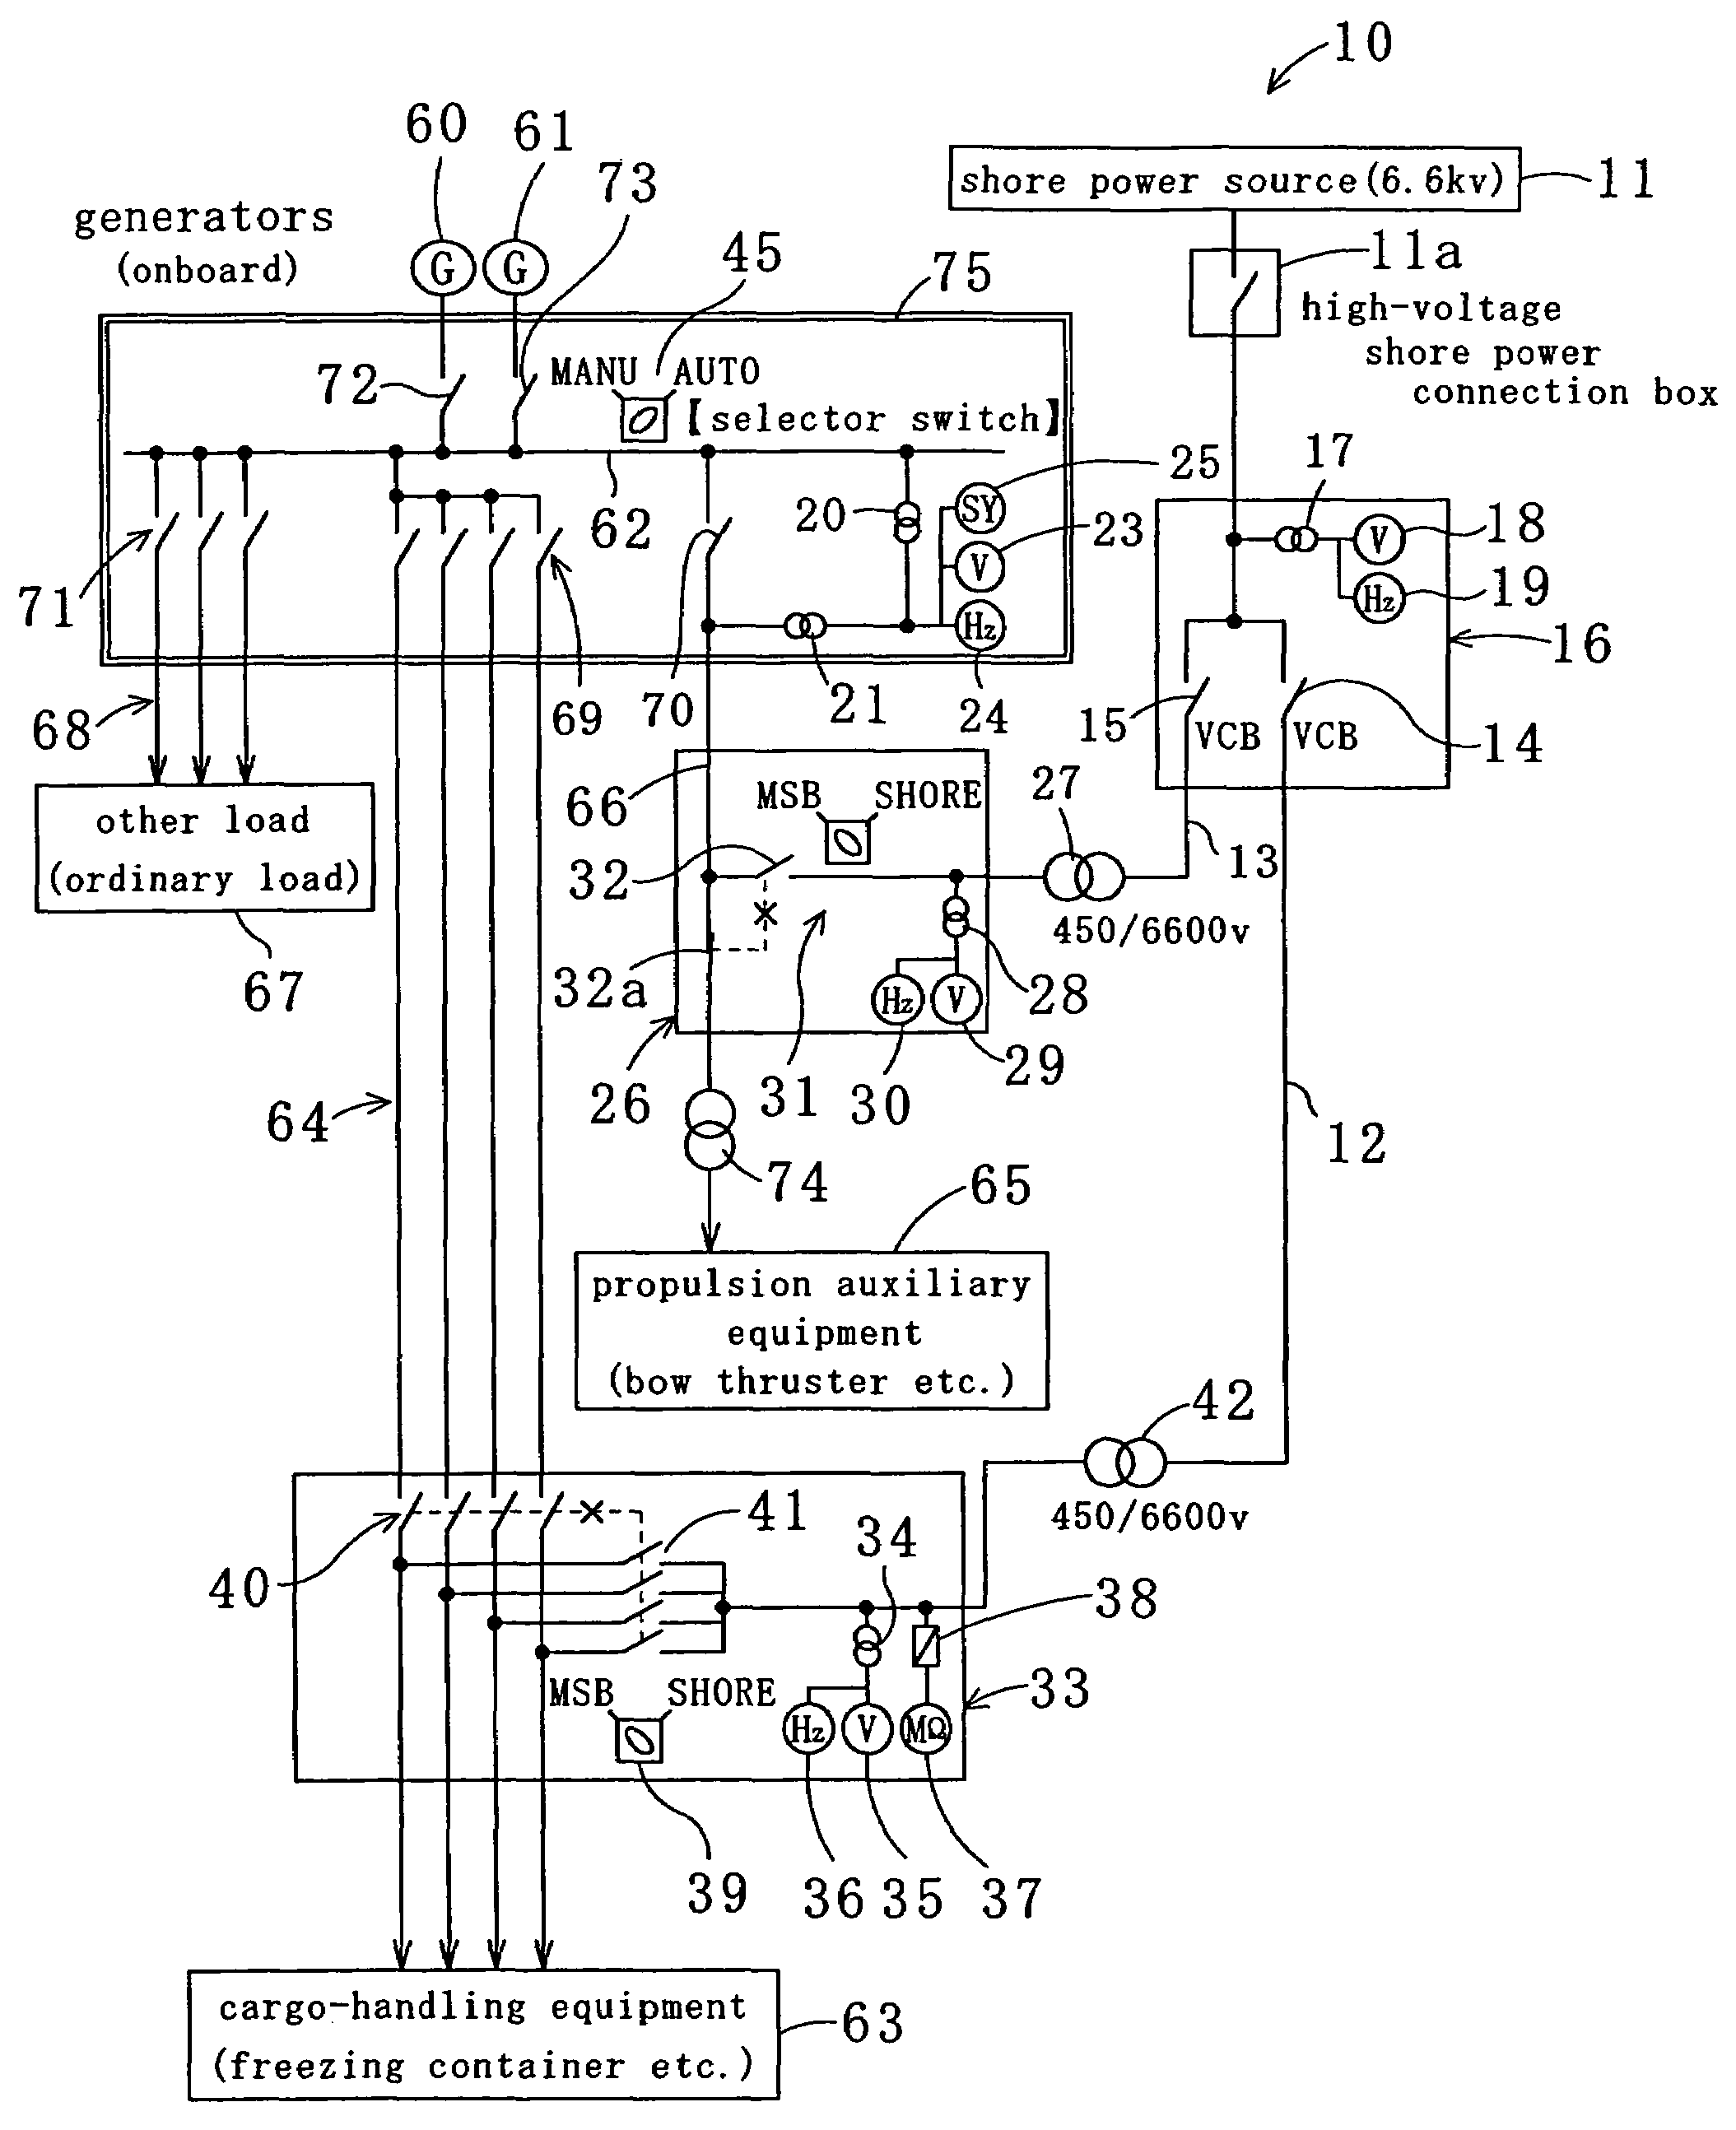 US07253538 20070807 D00000 patent us7253538 method of supplying electric power from shore vcb panel wiring diagram at creativeand.co